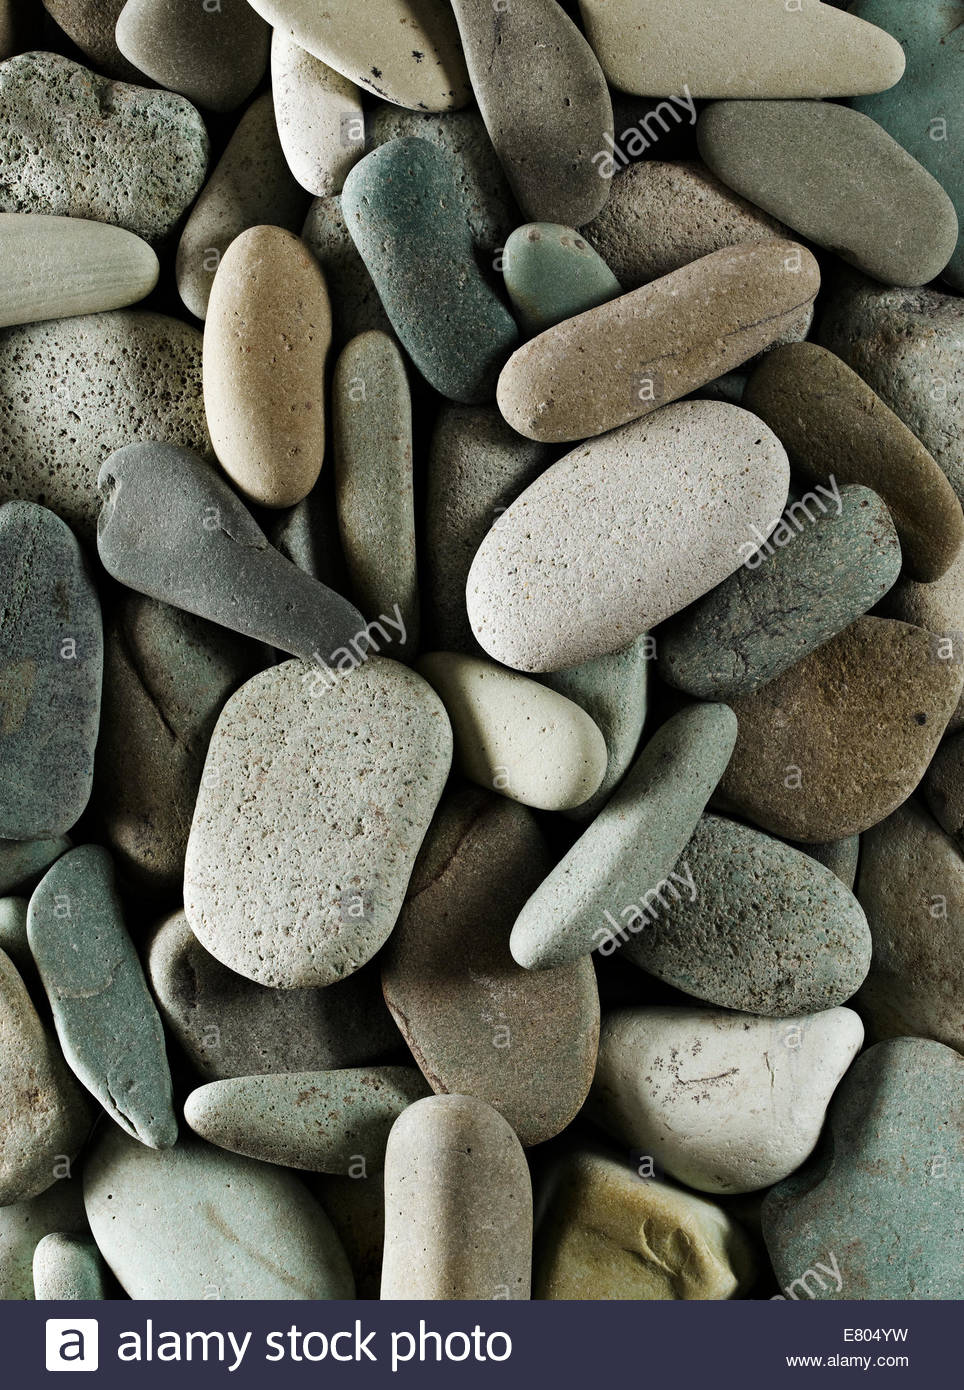 River or beach stone, perfect for backgrounds - Stock Image